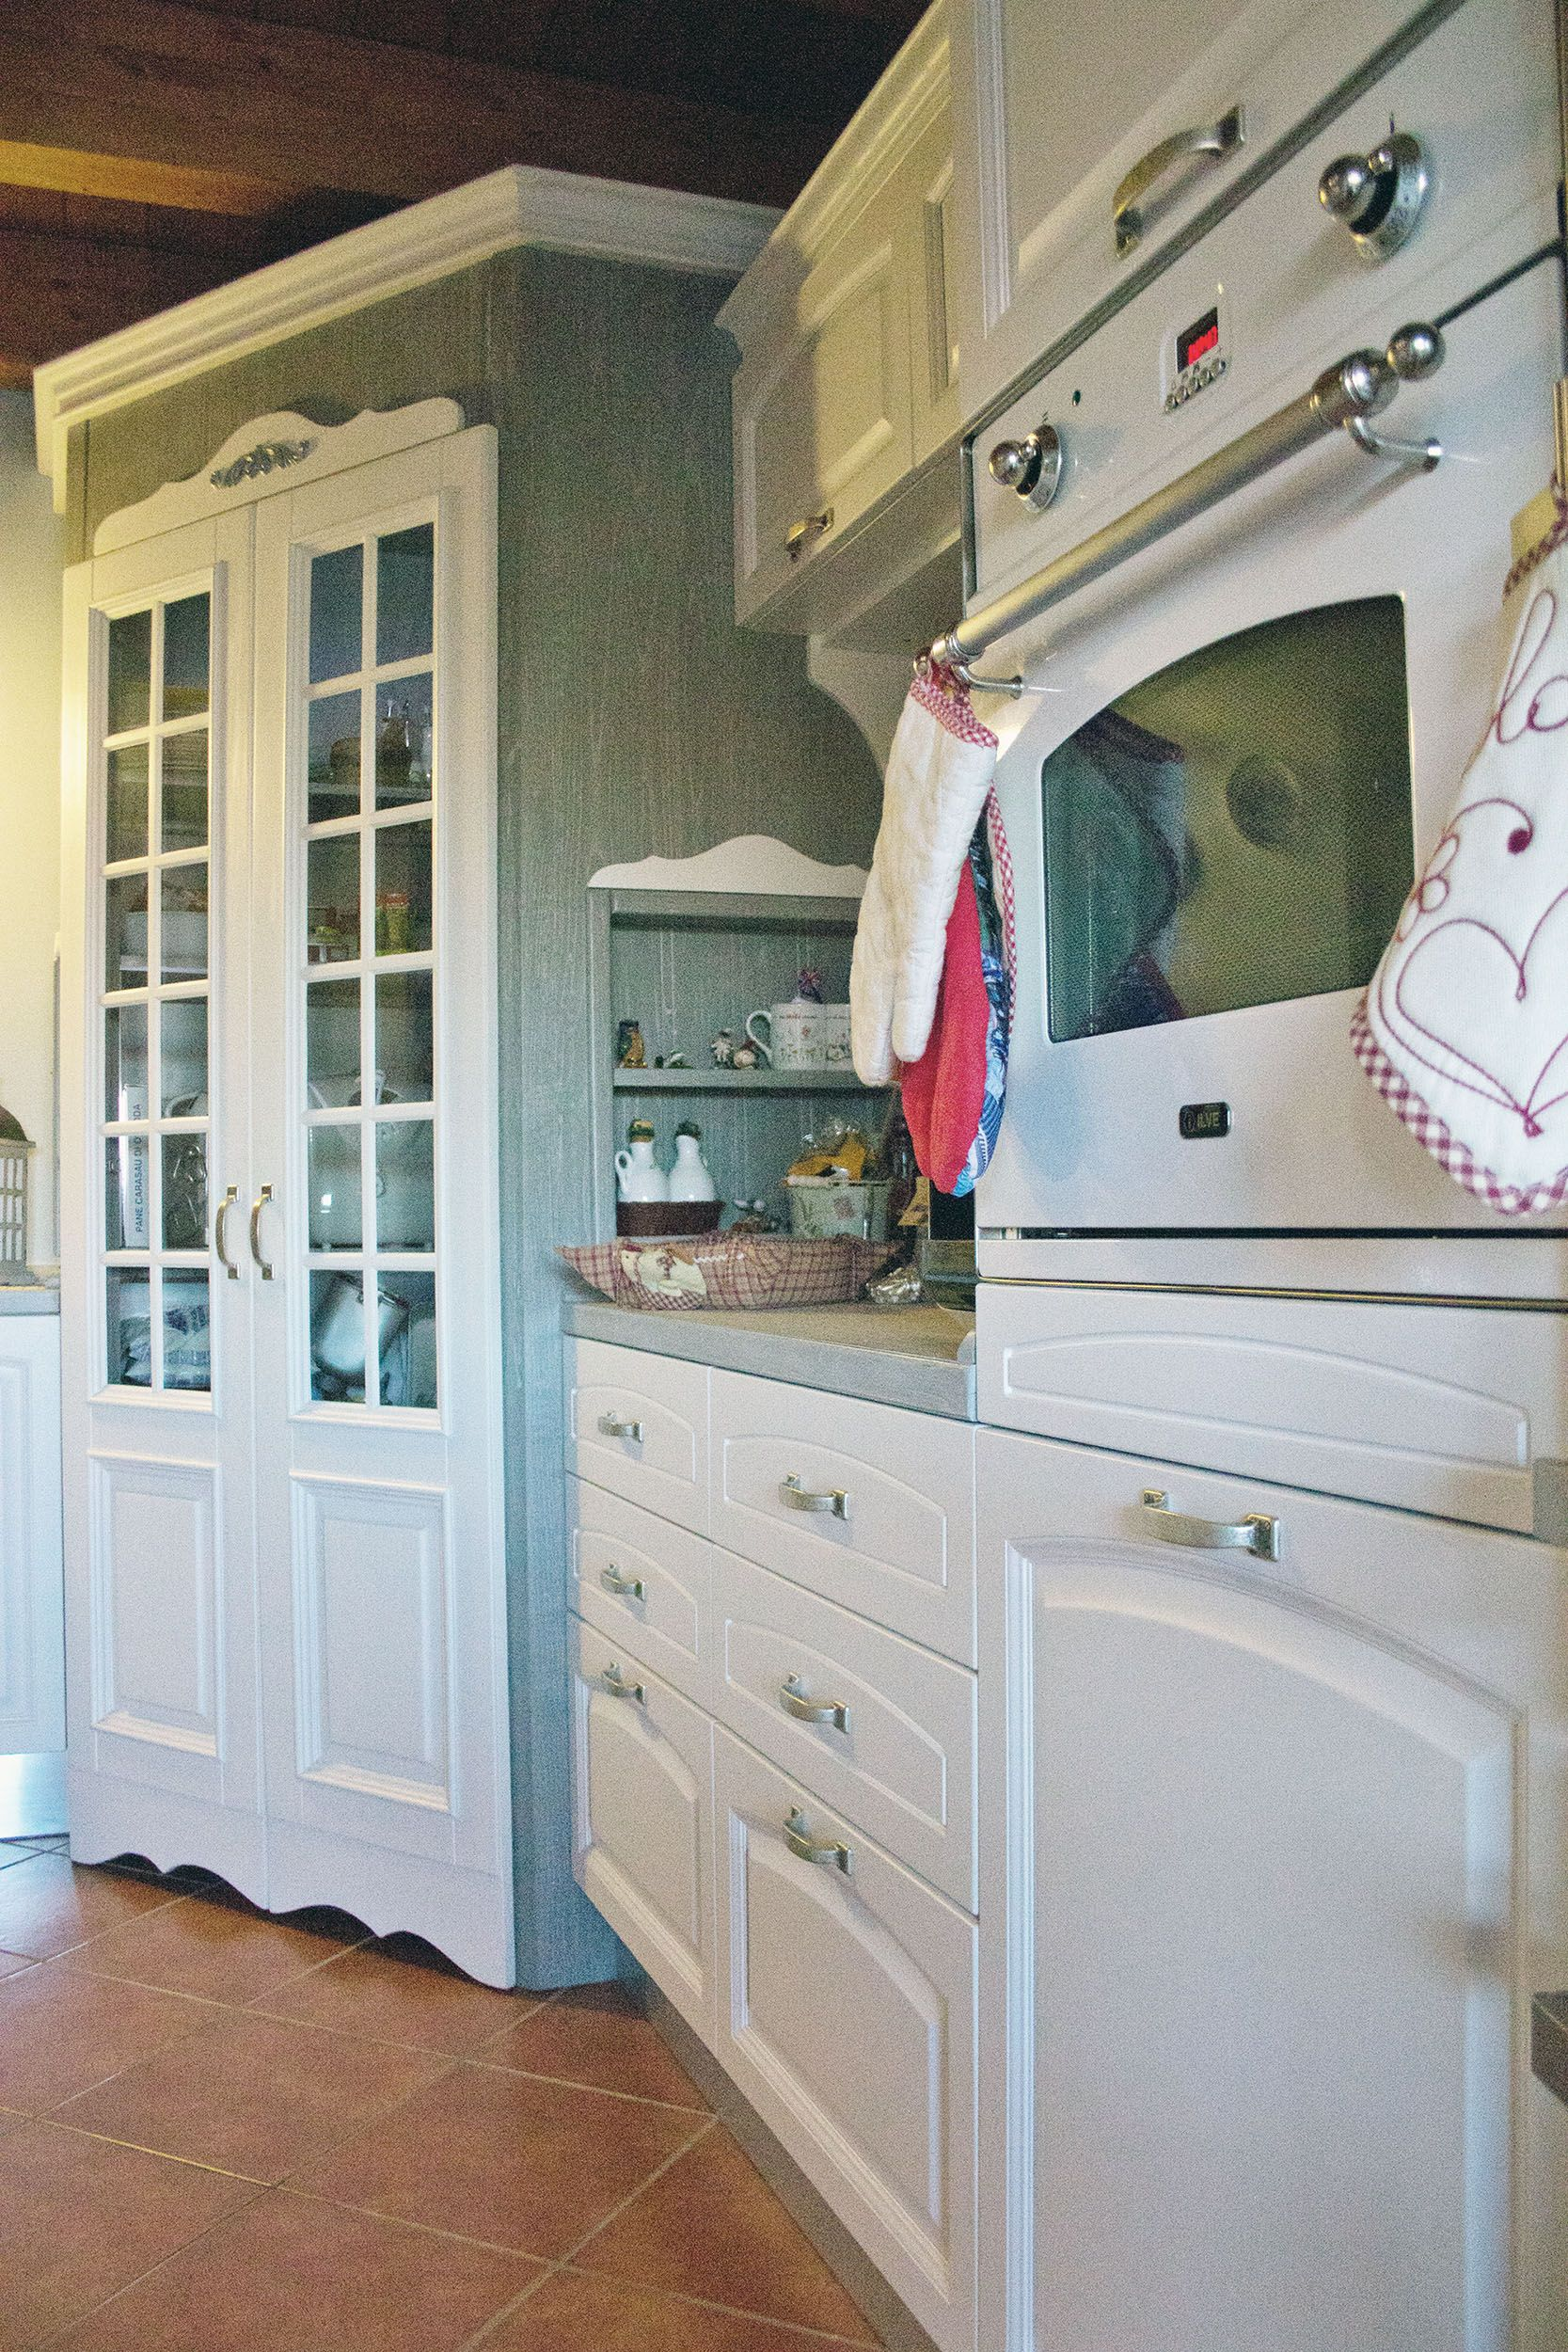 Pin by Mastro Geppetto on Cucine Shabby Chic | Pinterest | Cucina